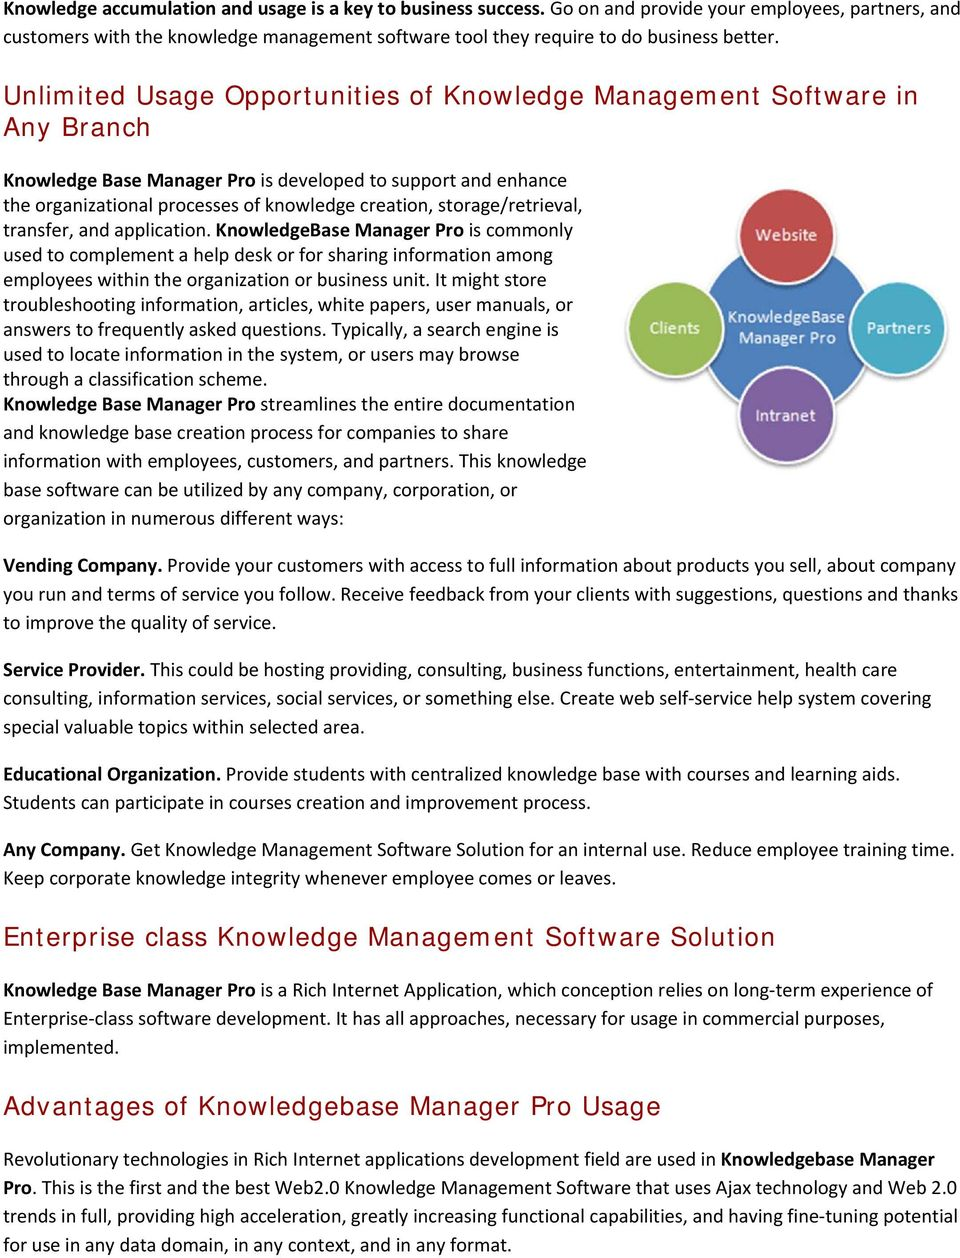 storage/retrieval, transfer, and application. KnowledgeBase Manager Pro is commonly used to complement a help desk or for sharing information among employees within the organization or business unit.